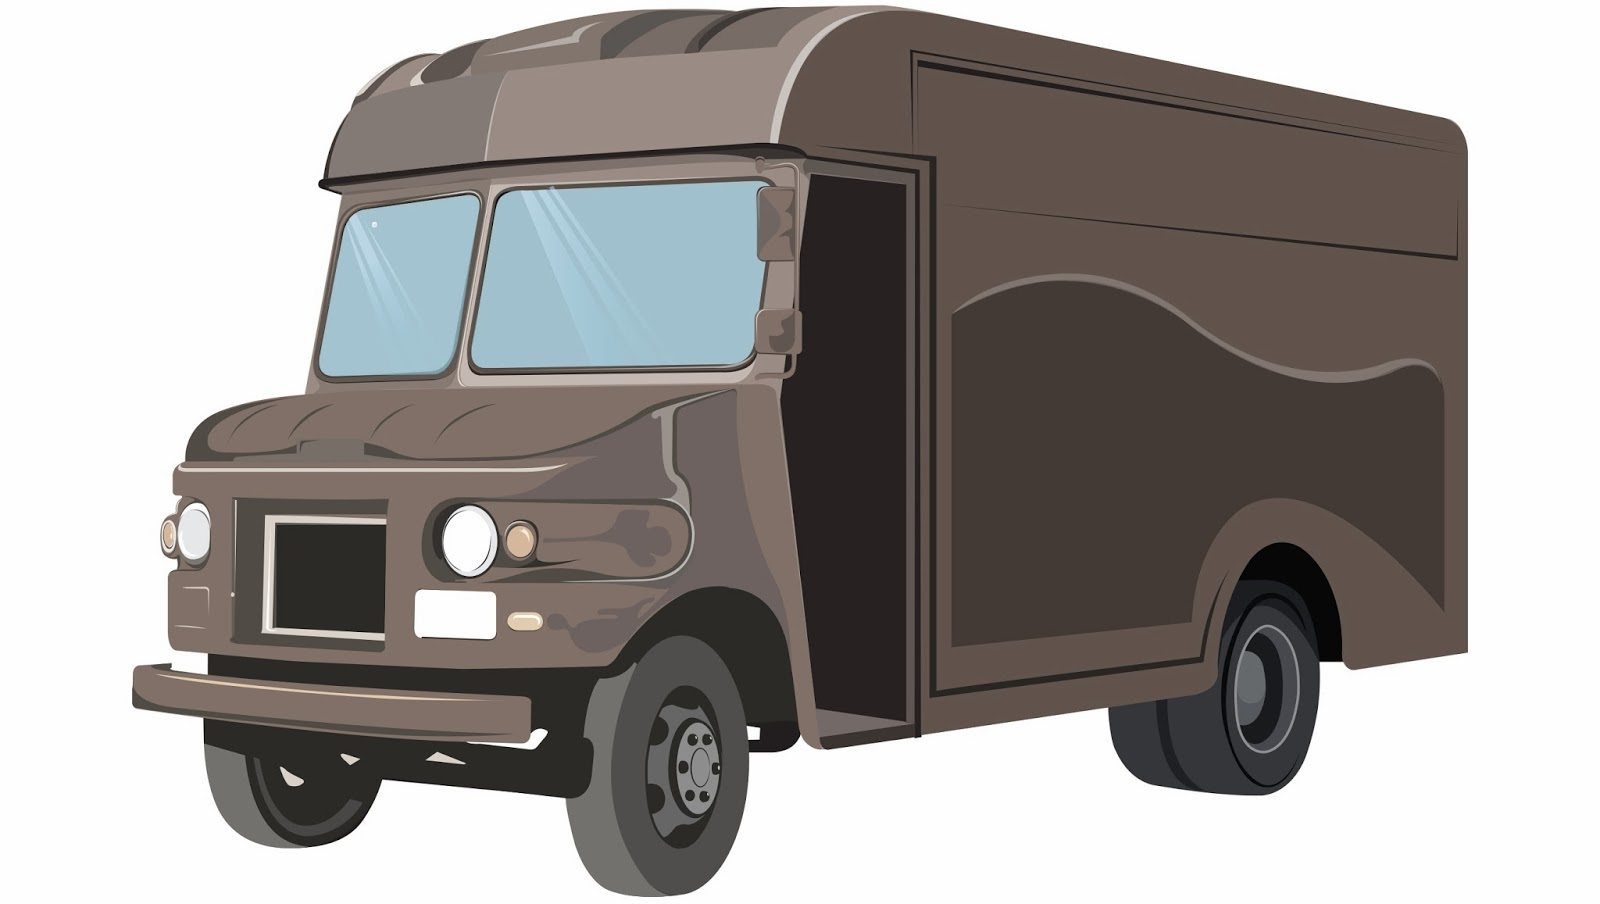 Ups delivery truck clipart.